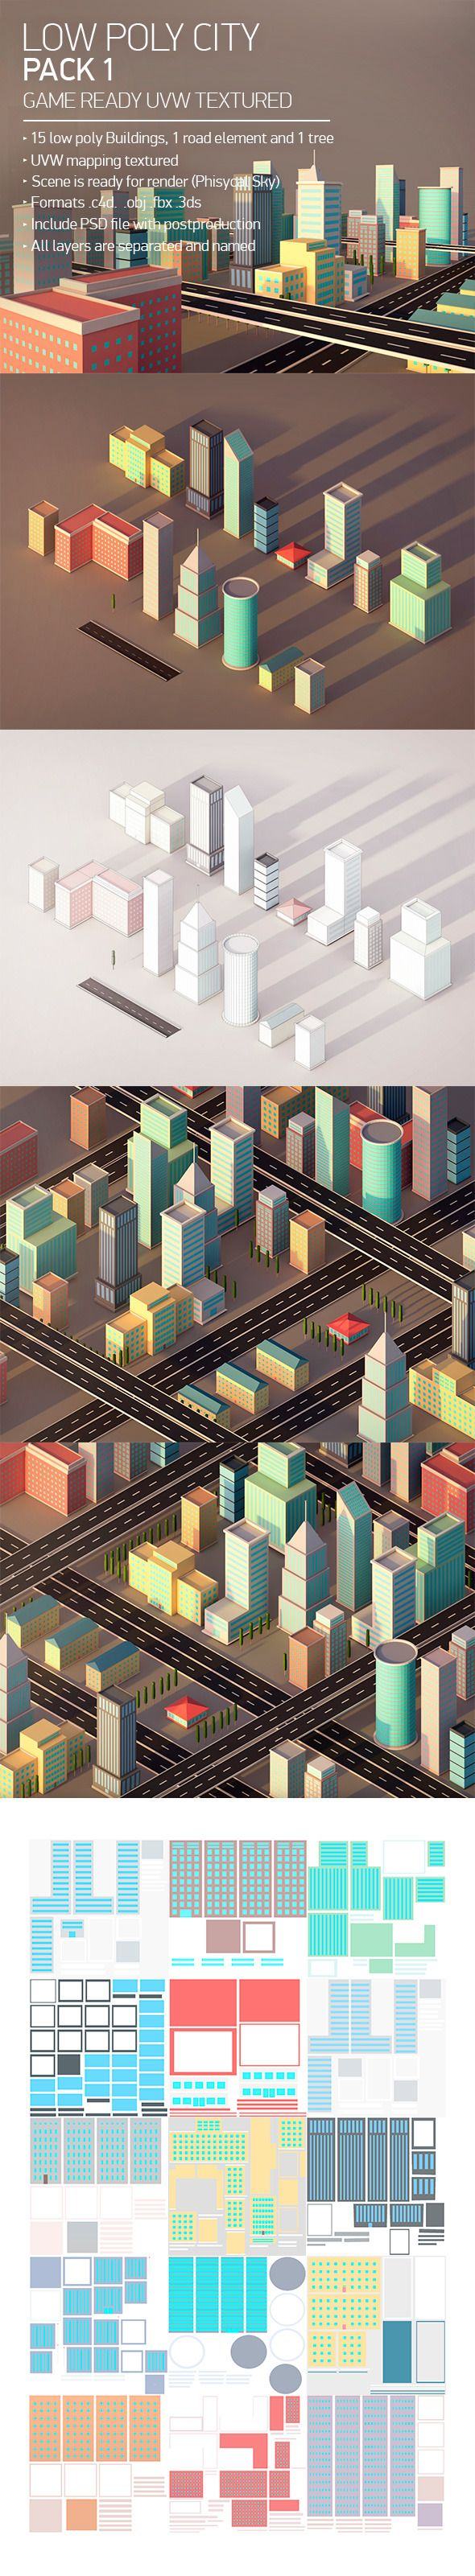 Low Poly City Pack 1 3D Models Design Template #cinema4d #3D Download here: https://3docean.net/item/low-poly-city-pack-1/12899950?ref=yinkira